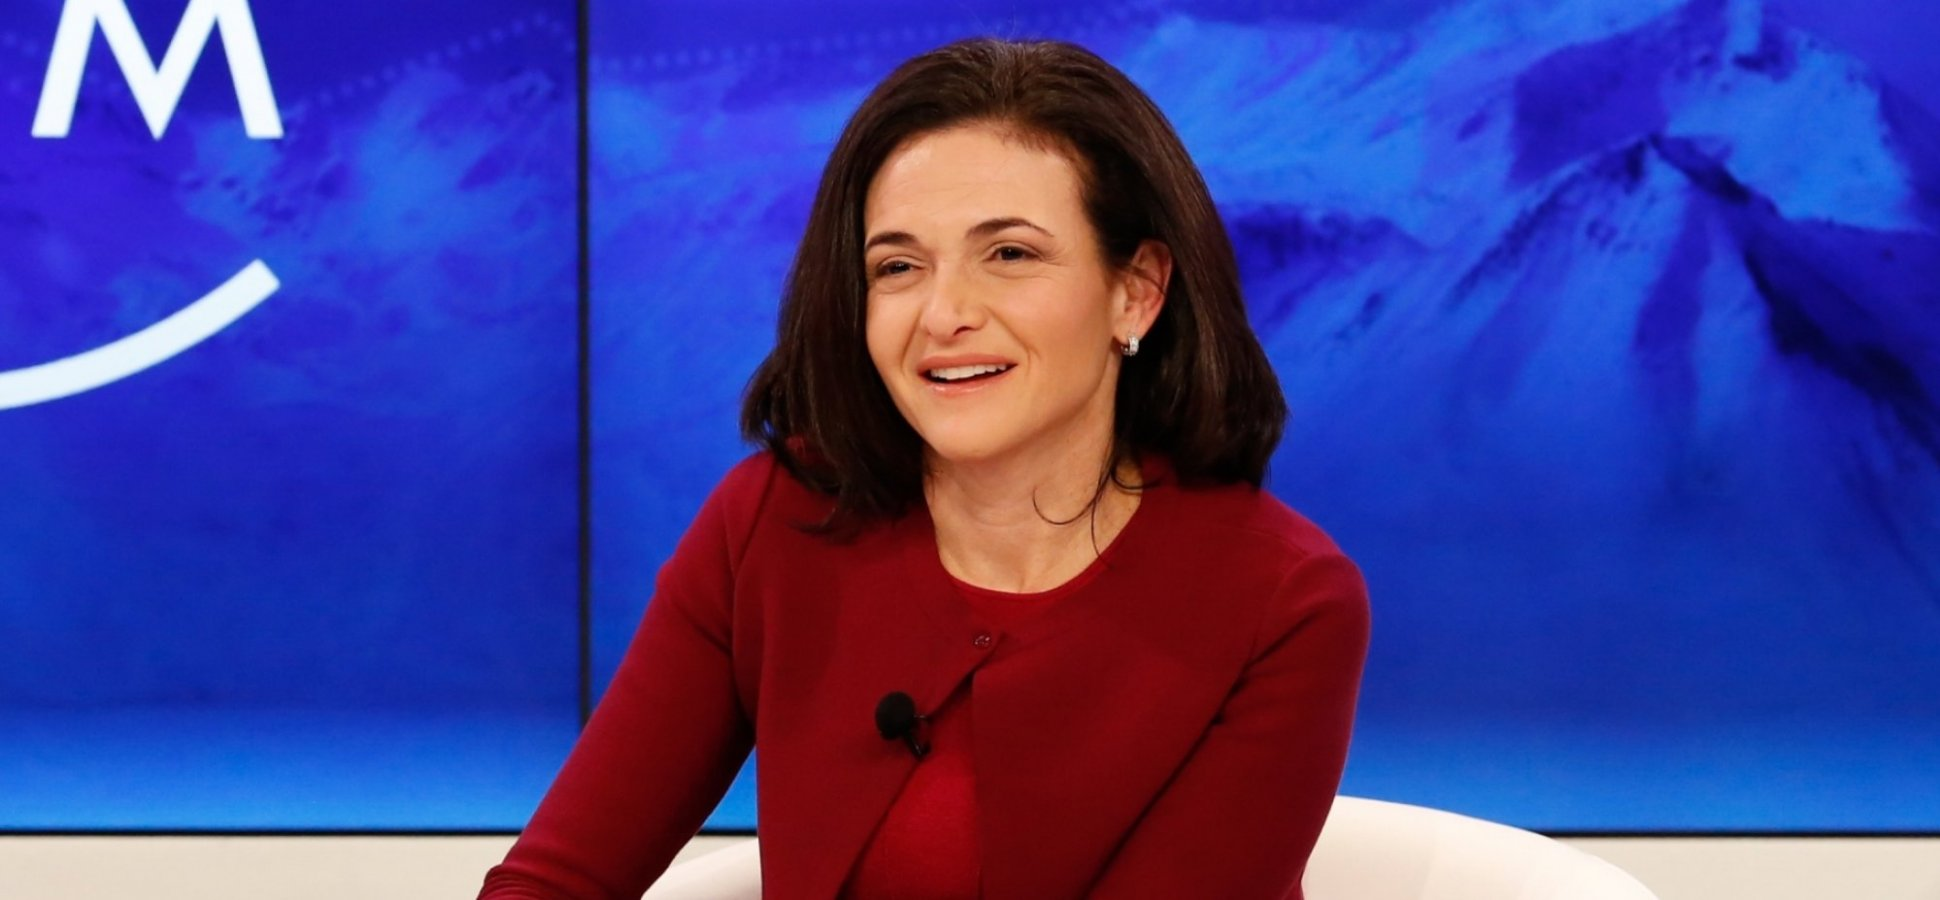 Sheryl Sandberg Is Teaching a New Free Online Course on Mental